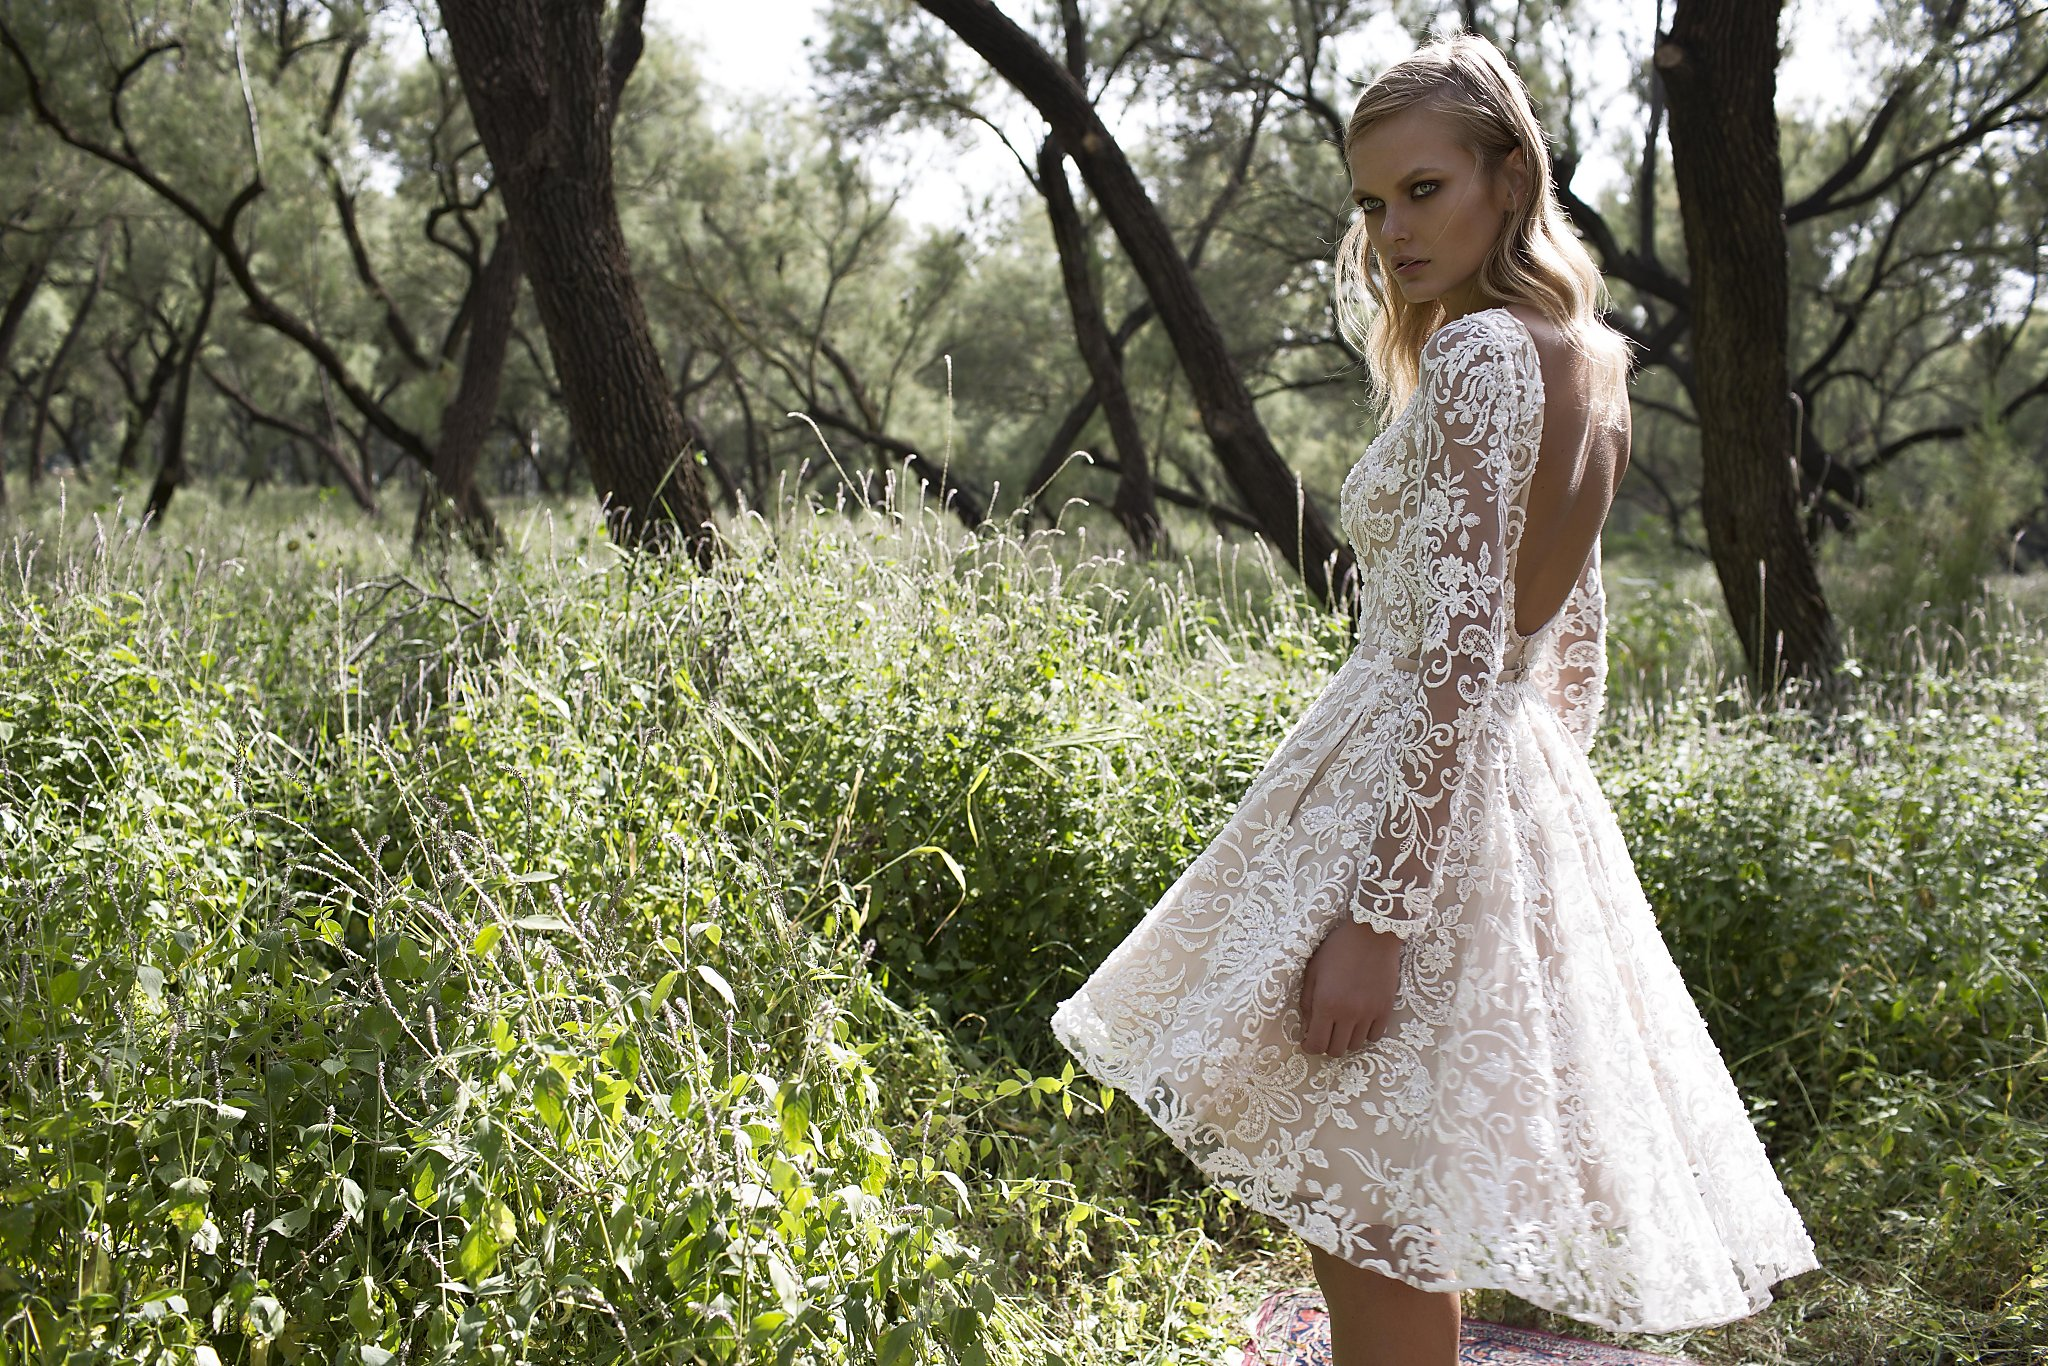 Israeli designers bring the \'wow\' factor - SFChronicle.com